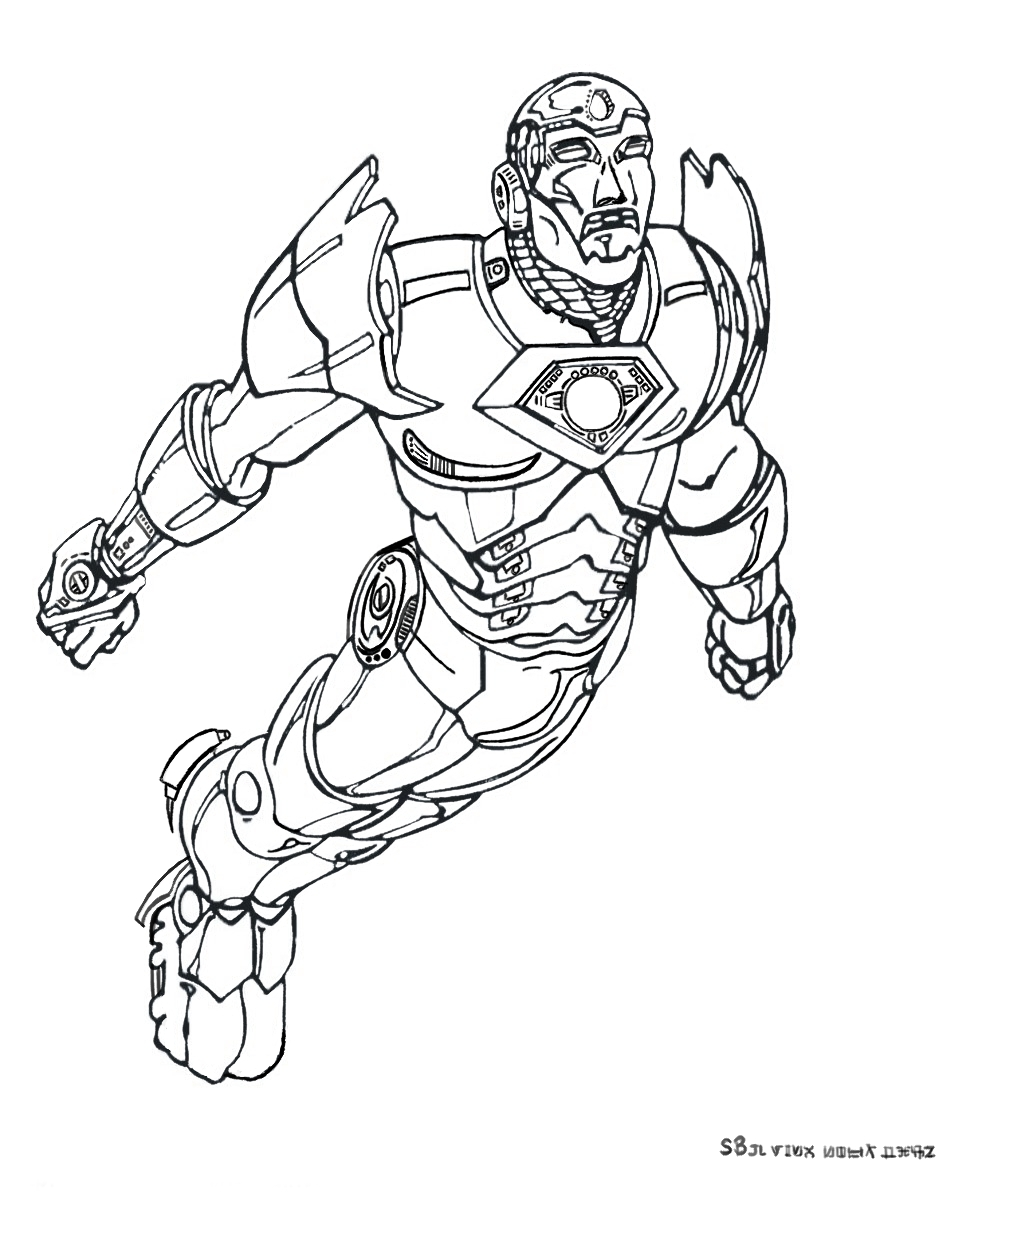 Iron Man coloring page with few details for kids